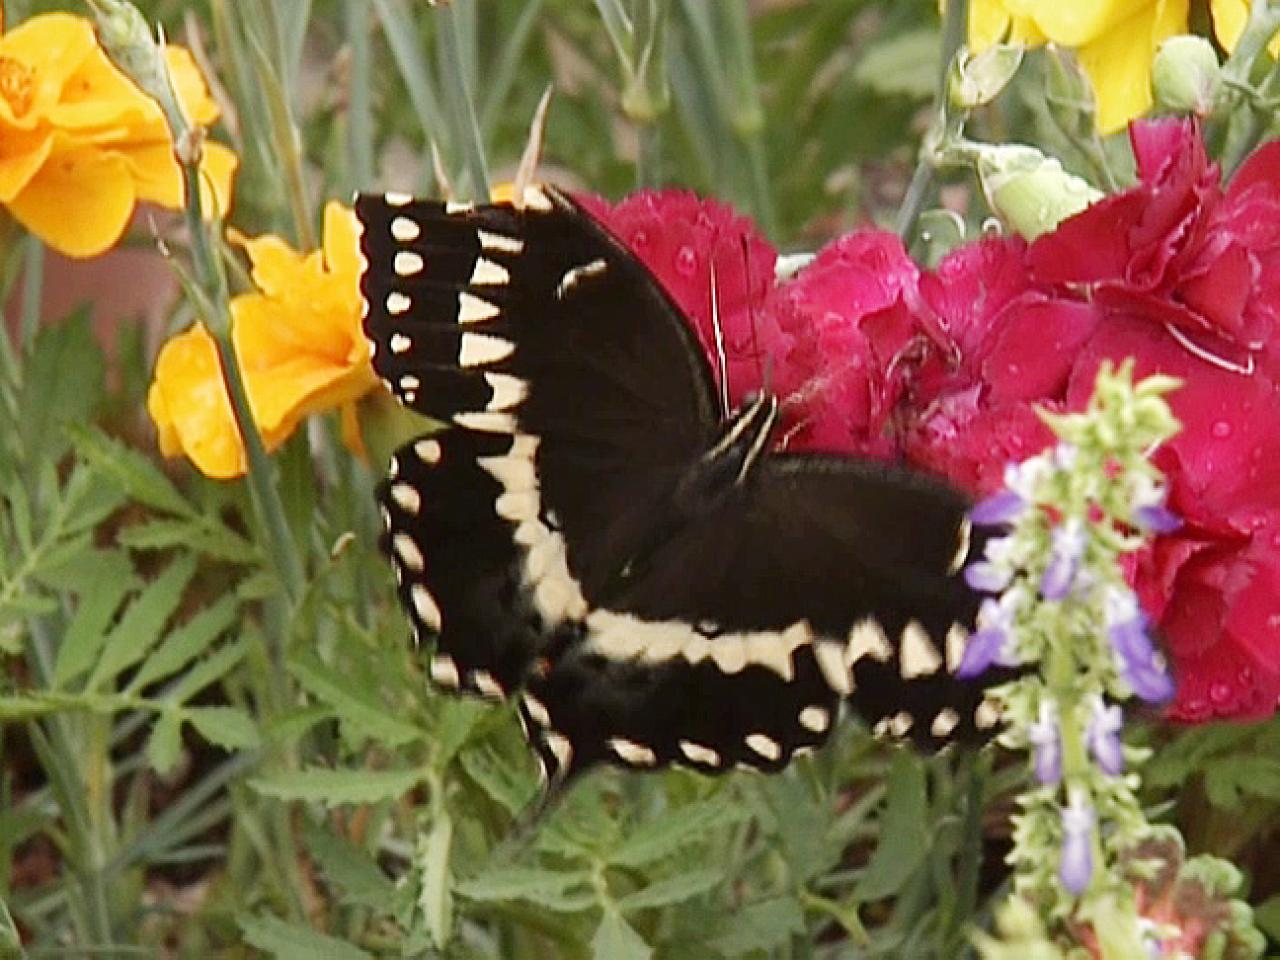 Attracting Butterflies to the Garden